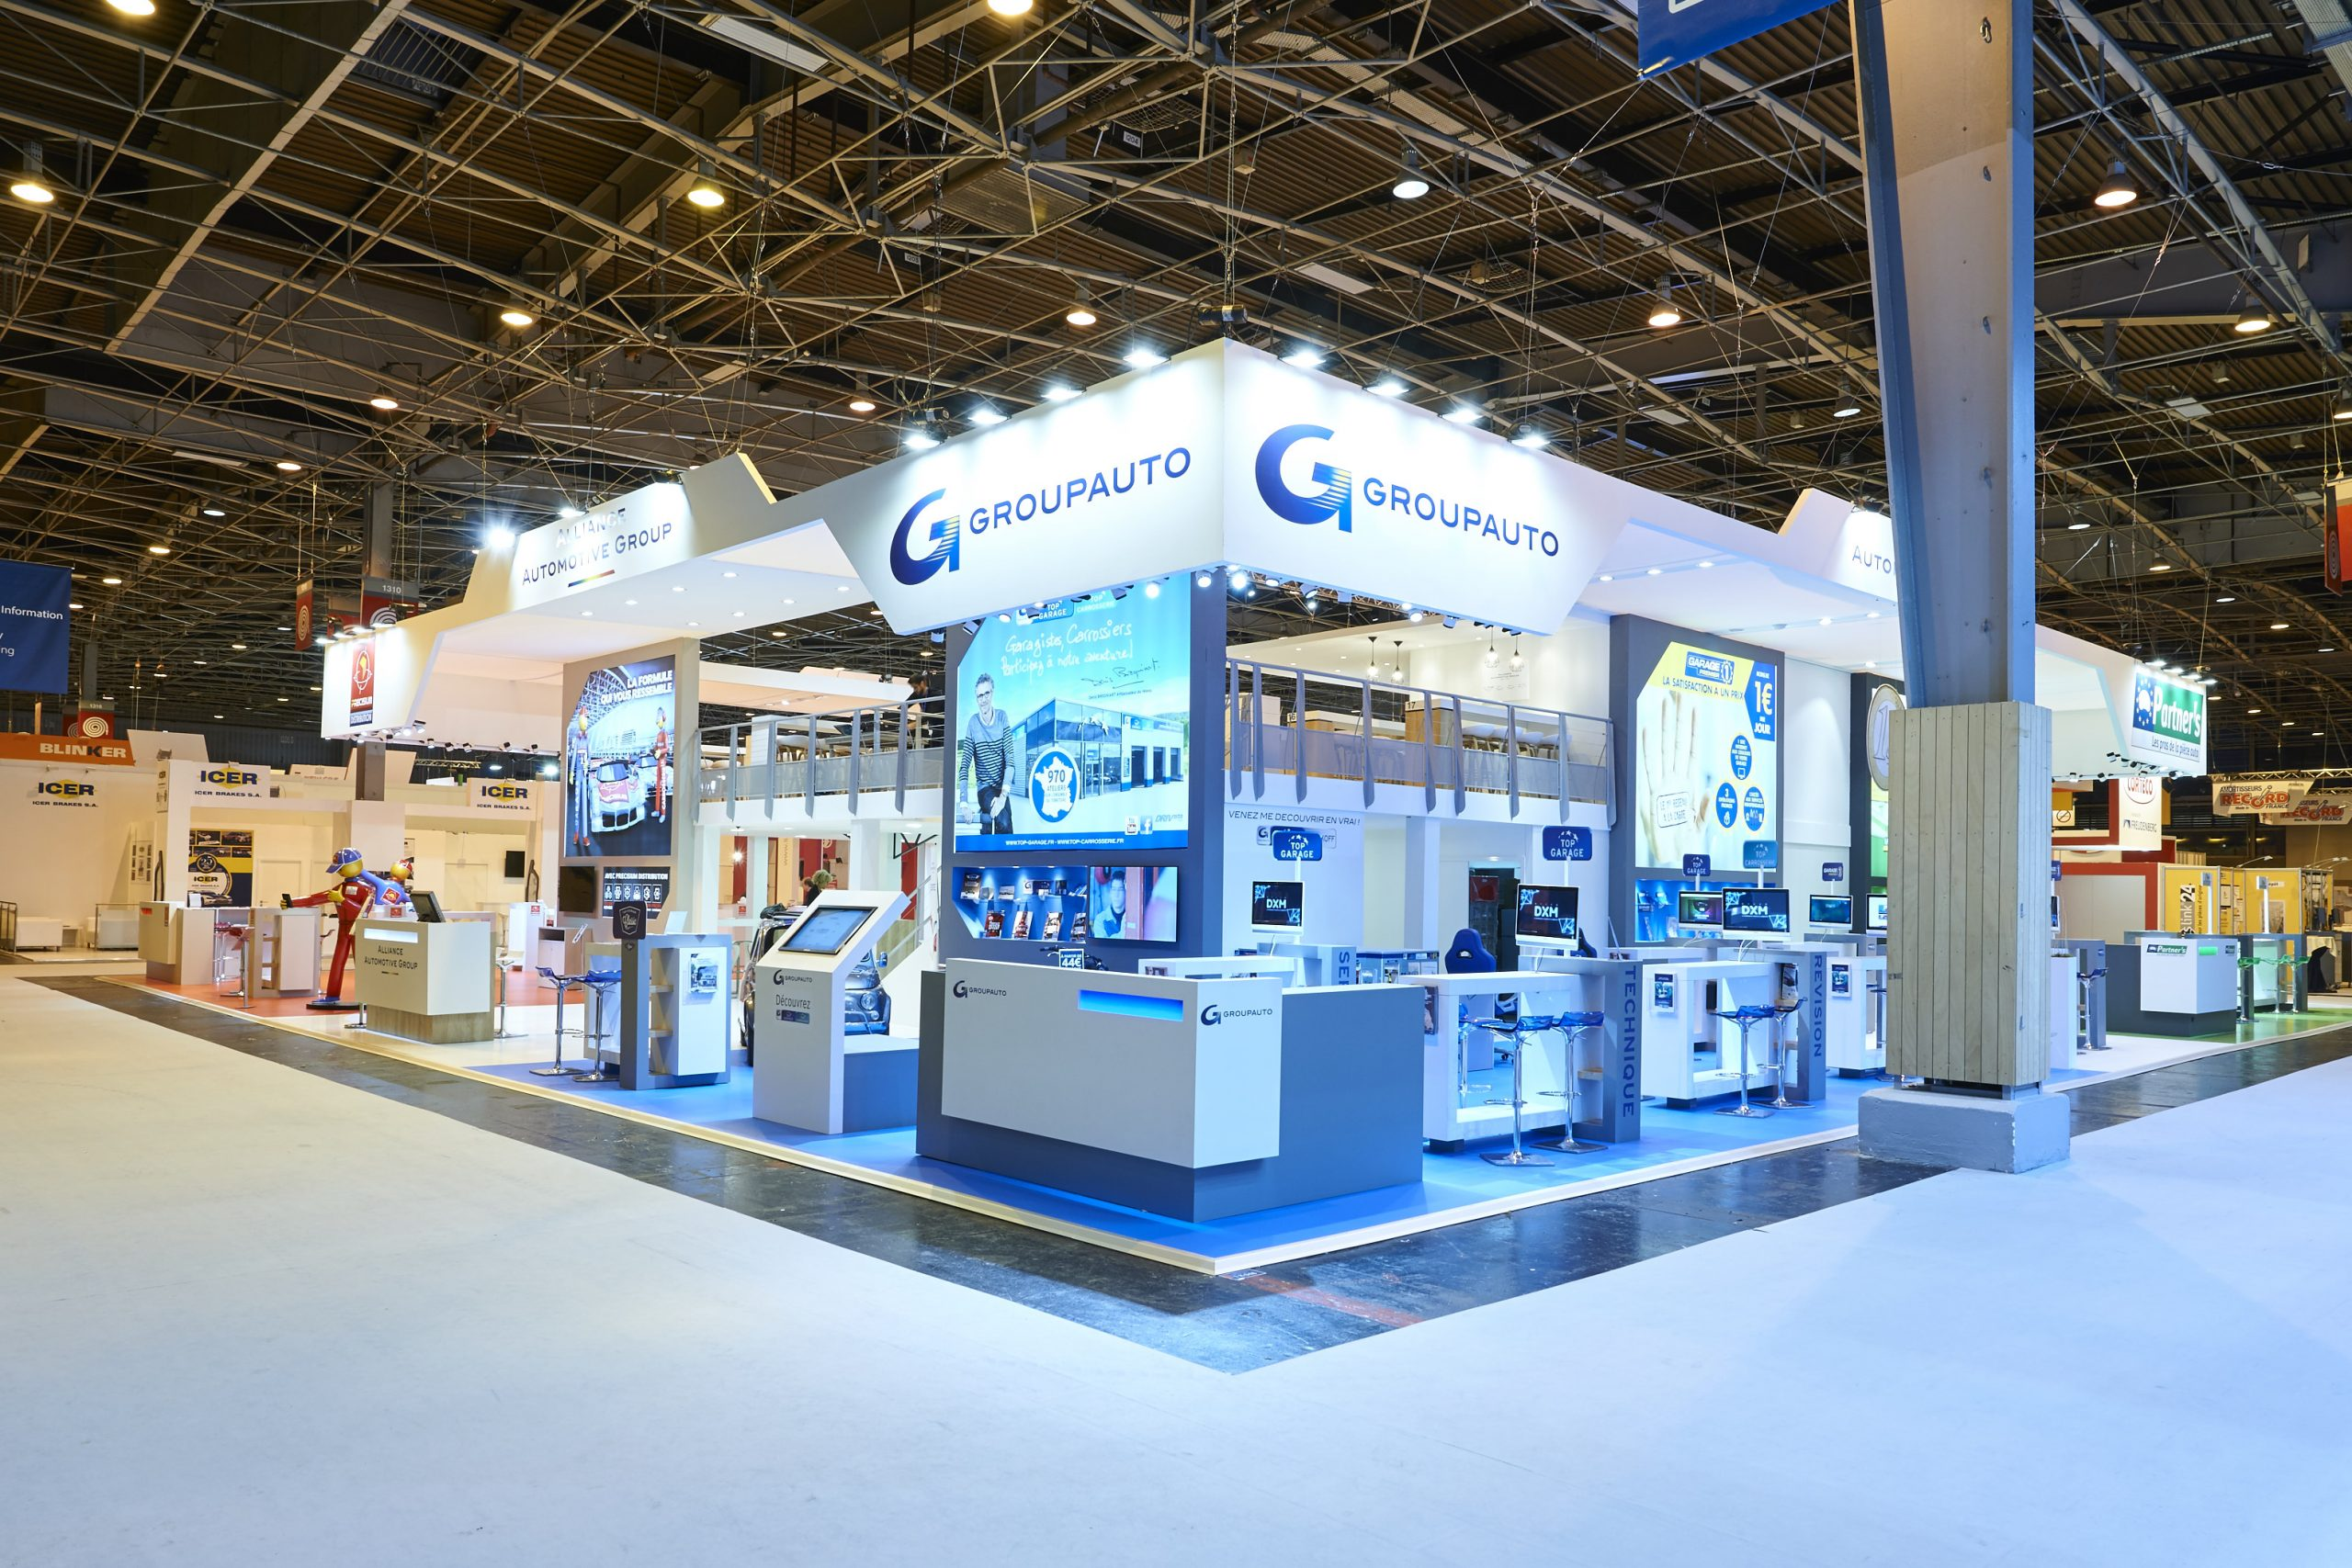 STAND, ALLIANCE AUTOMOTIVE GROUP, SALON, EQUIPAUTO